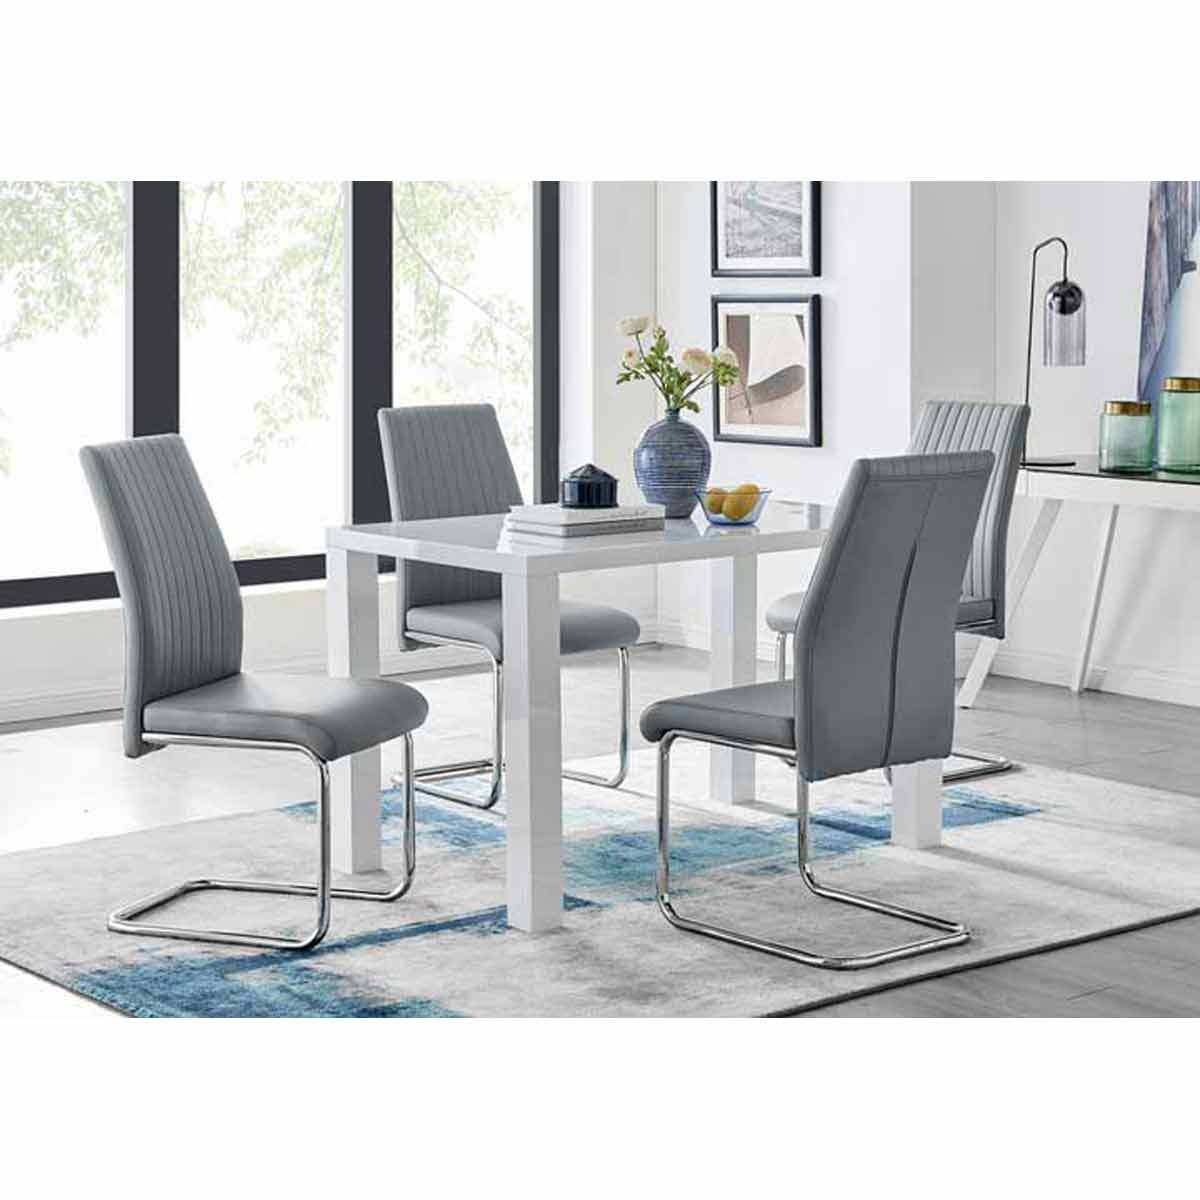 Furniture Box Pivero White High Gloss Dining Table And 4 Elephant Grey Lorenzo Chairs Set